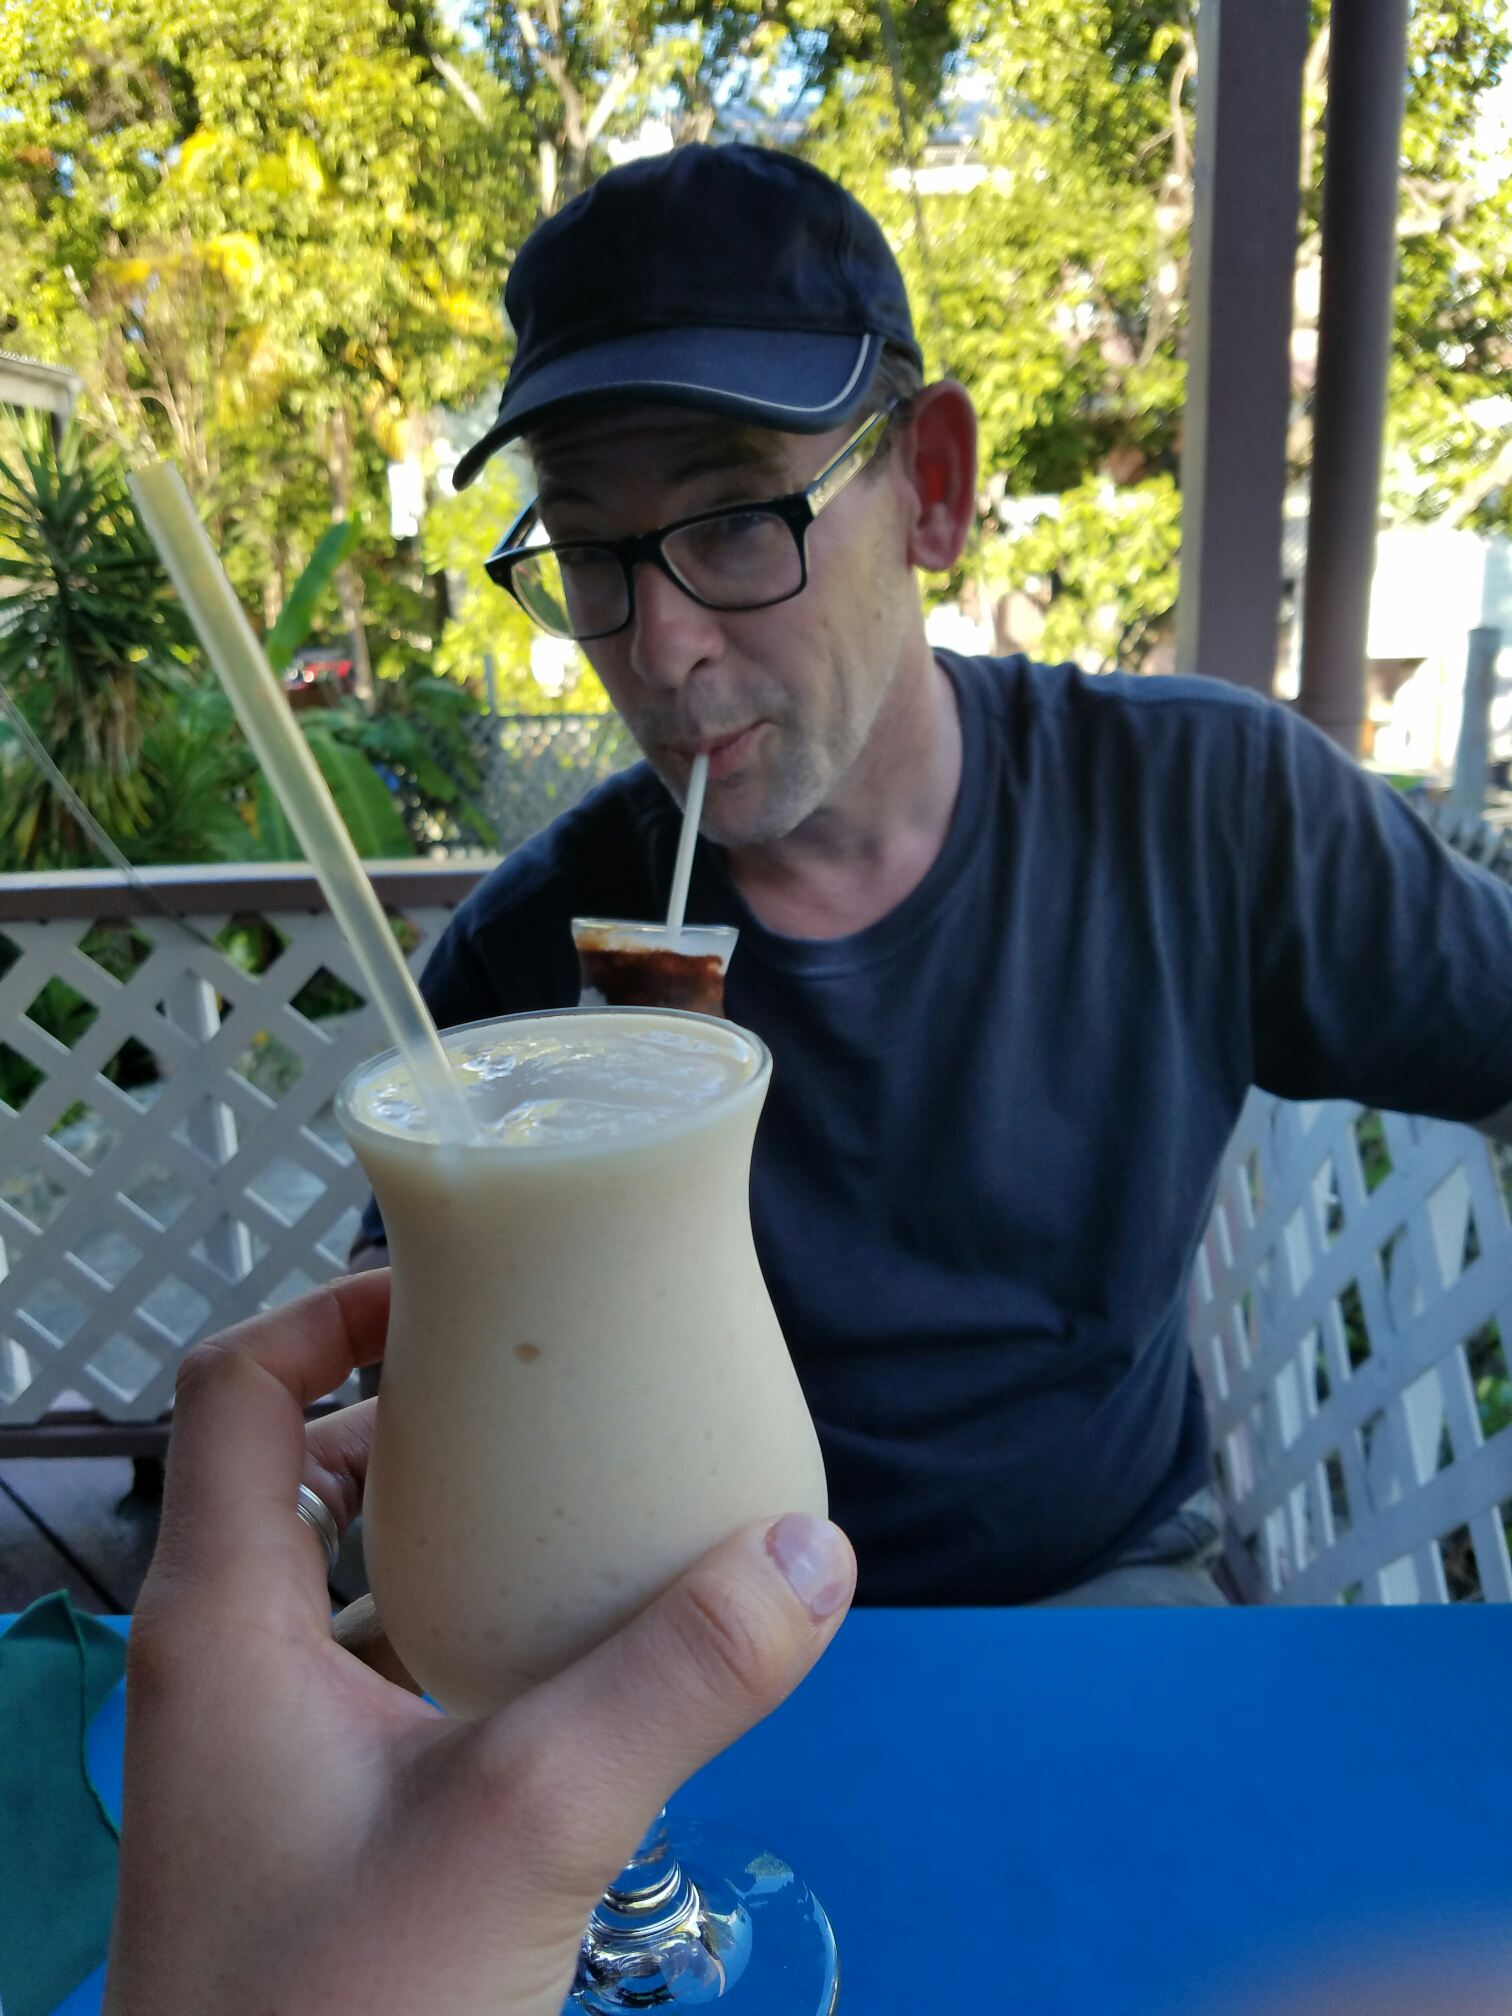 """I'm drinking a """"Nutwhacker"""" which is like a Reese's Peanut Butter Cup in a frozen booze drink. This drink erases any memory of The DONALD, I promise..."""